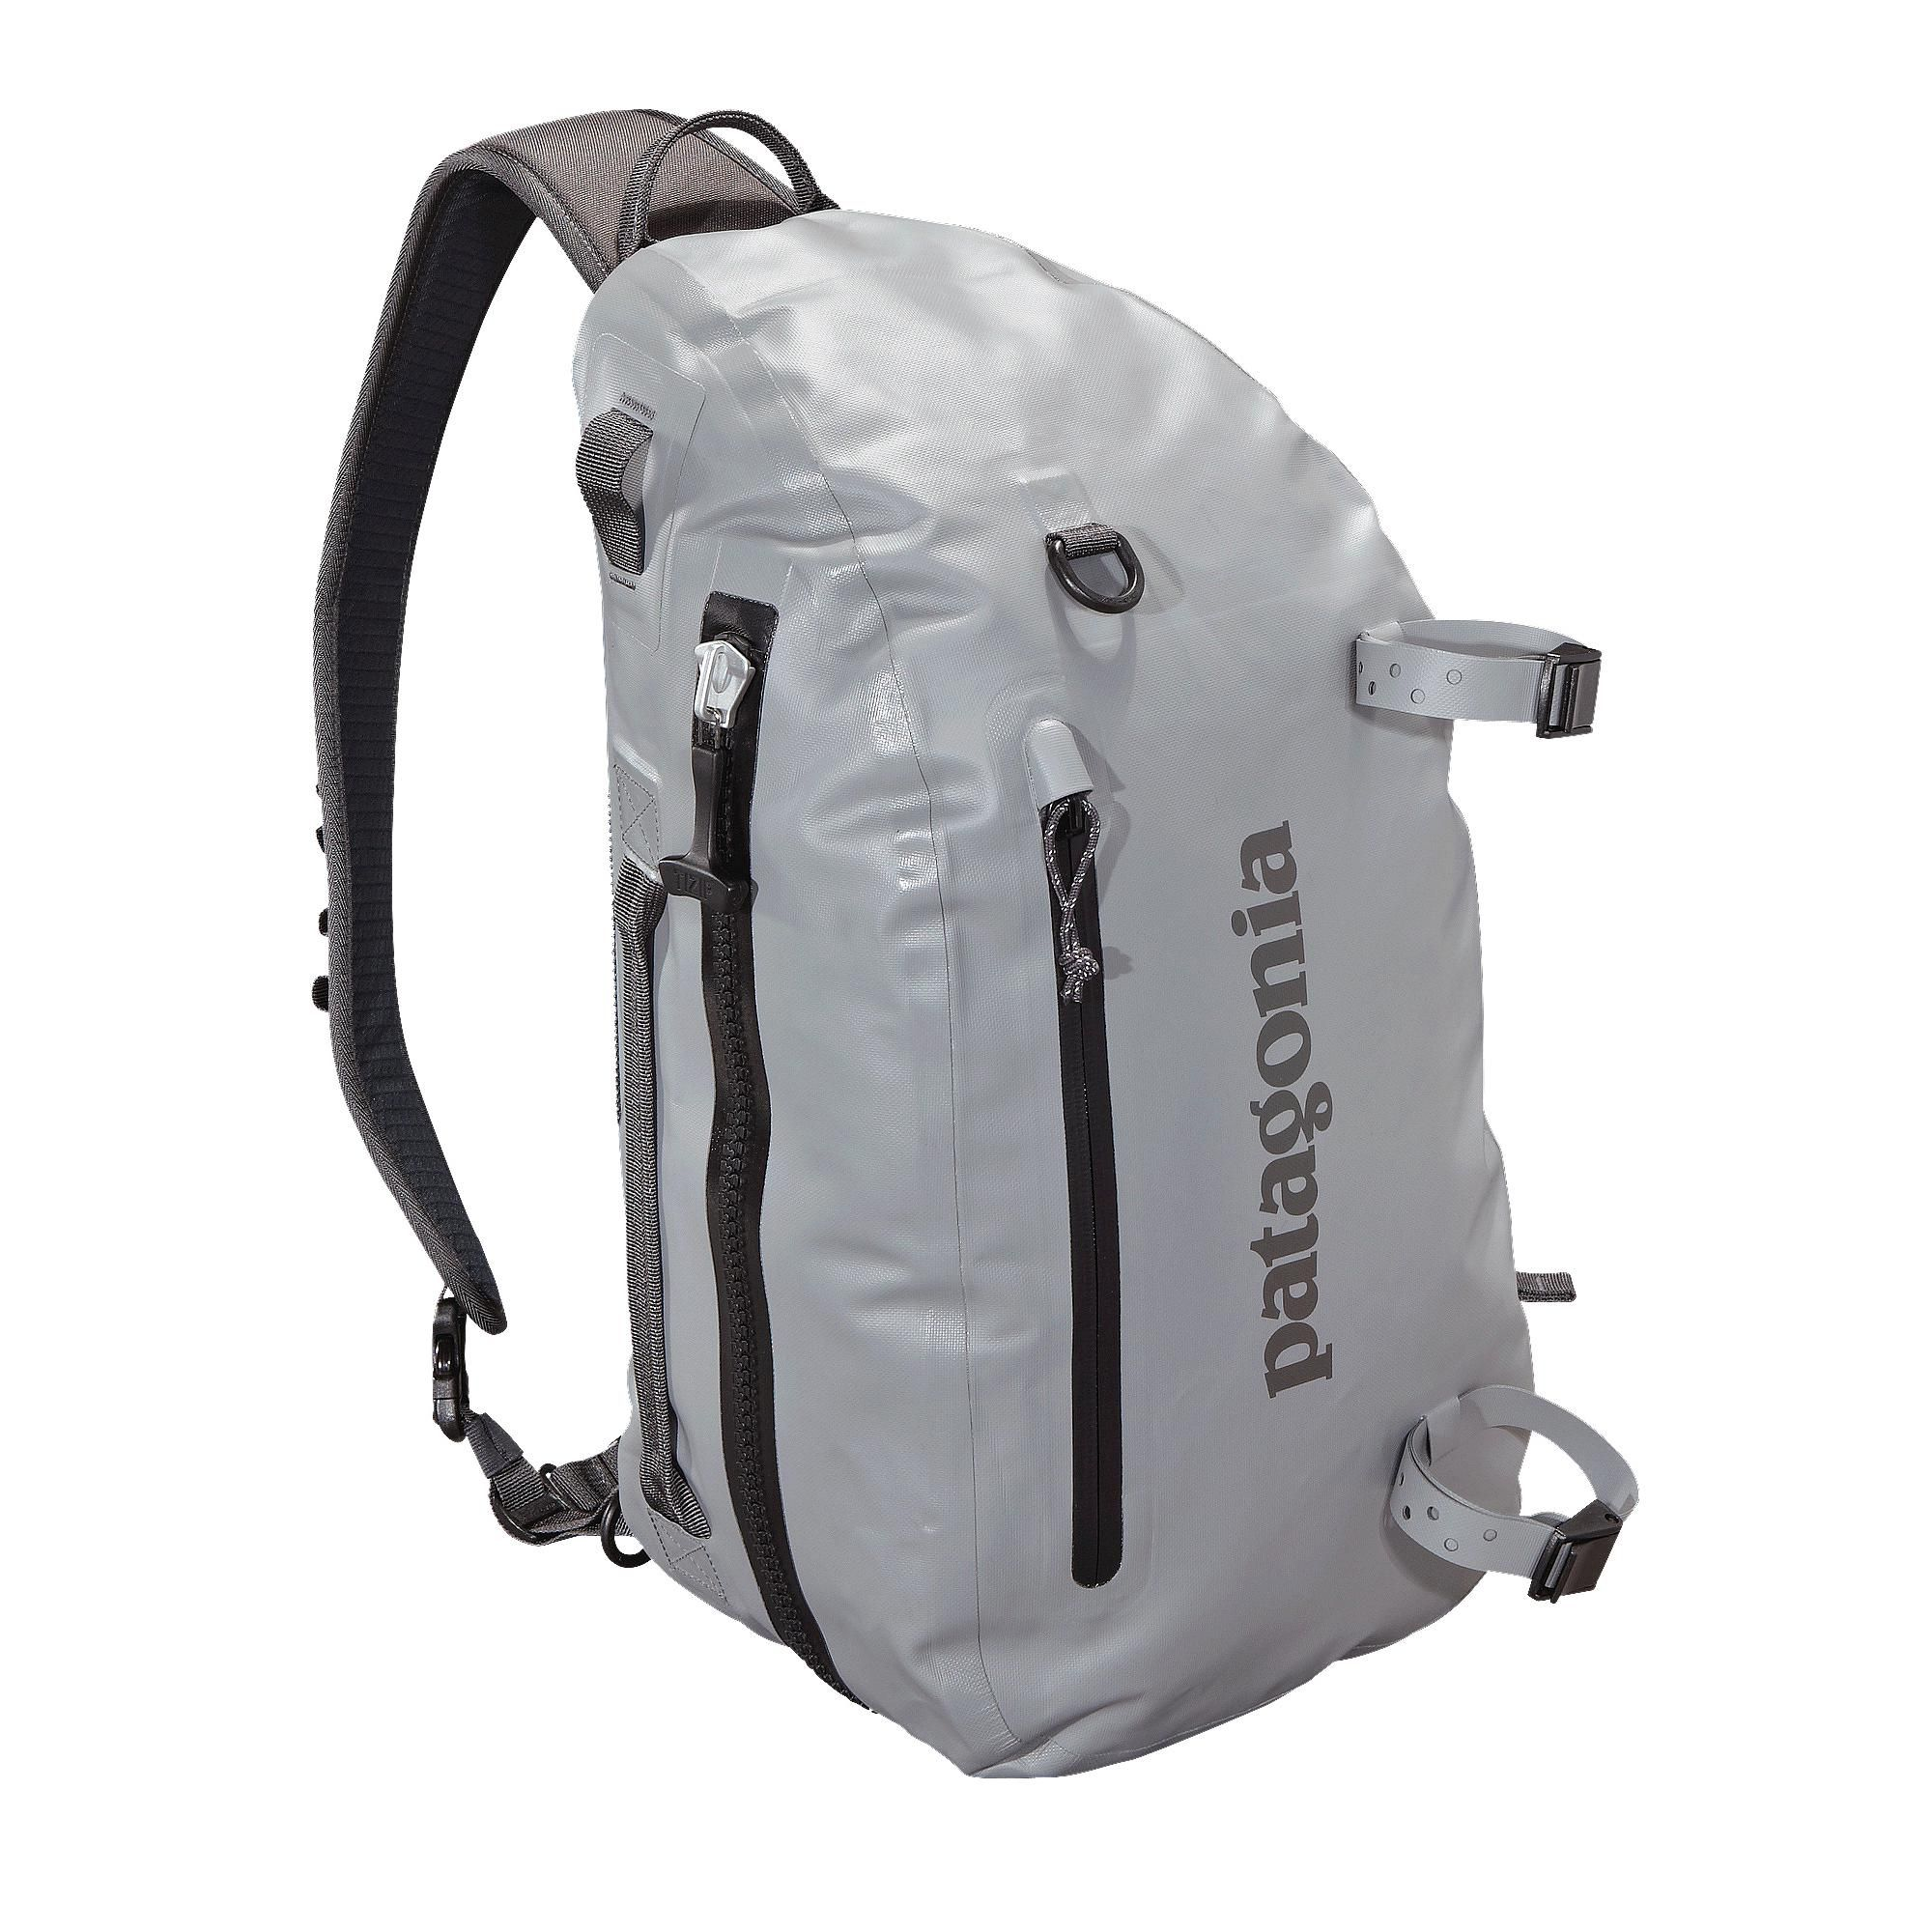 Stormfront® Sling 20L | The o'jays, Patagonia and World